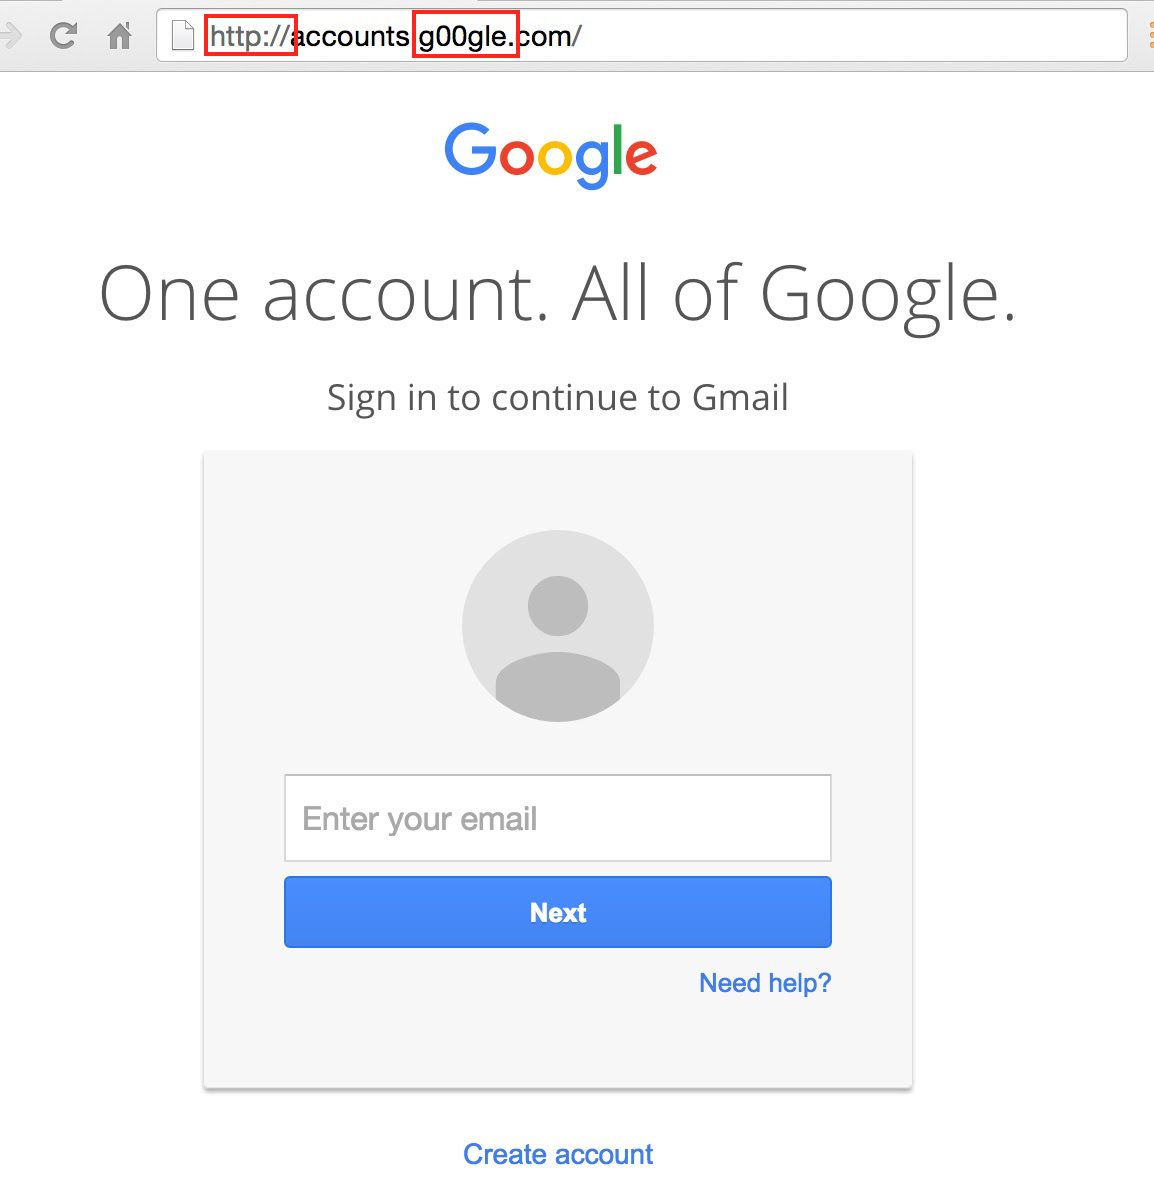 Changeling Google interface invites you to enter sensitive information - but having read the fake eye miss